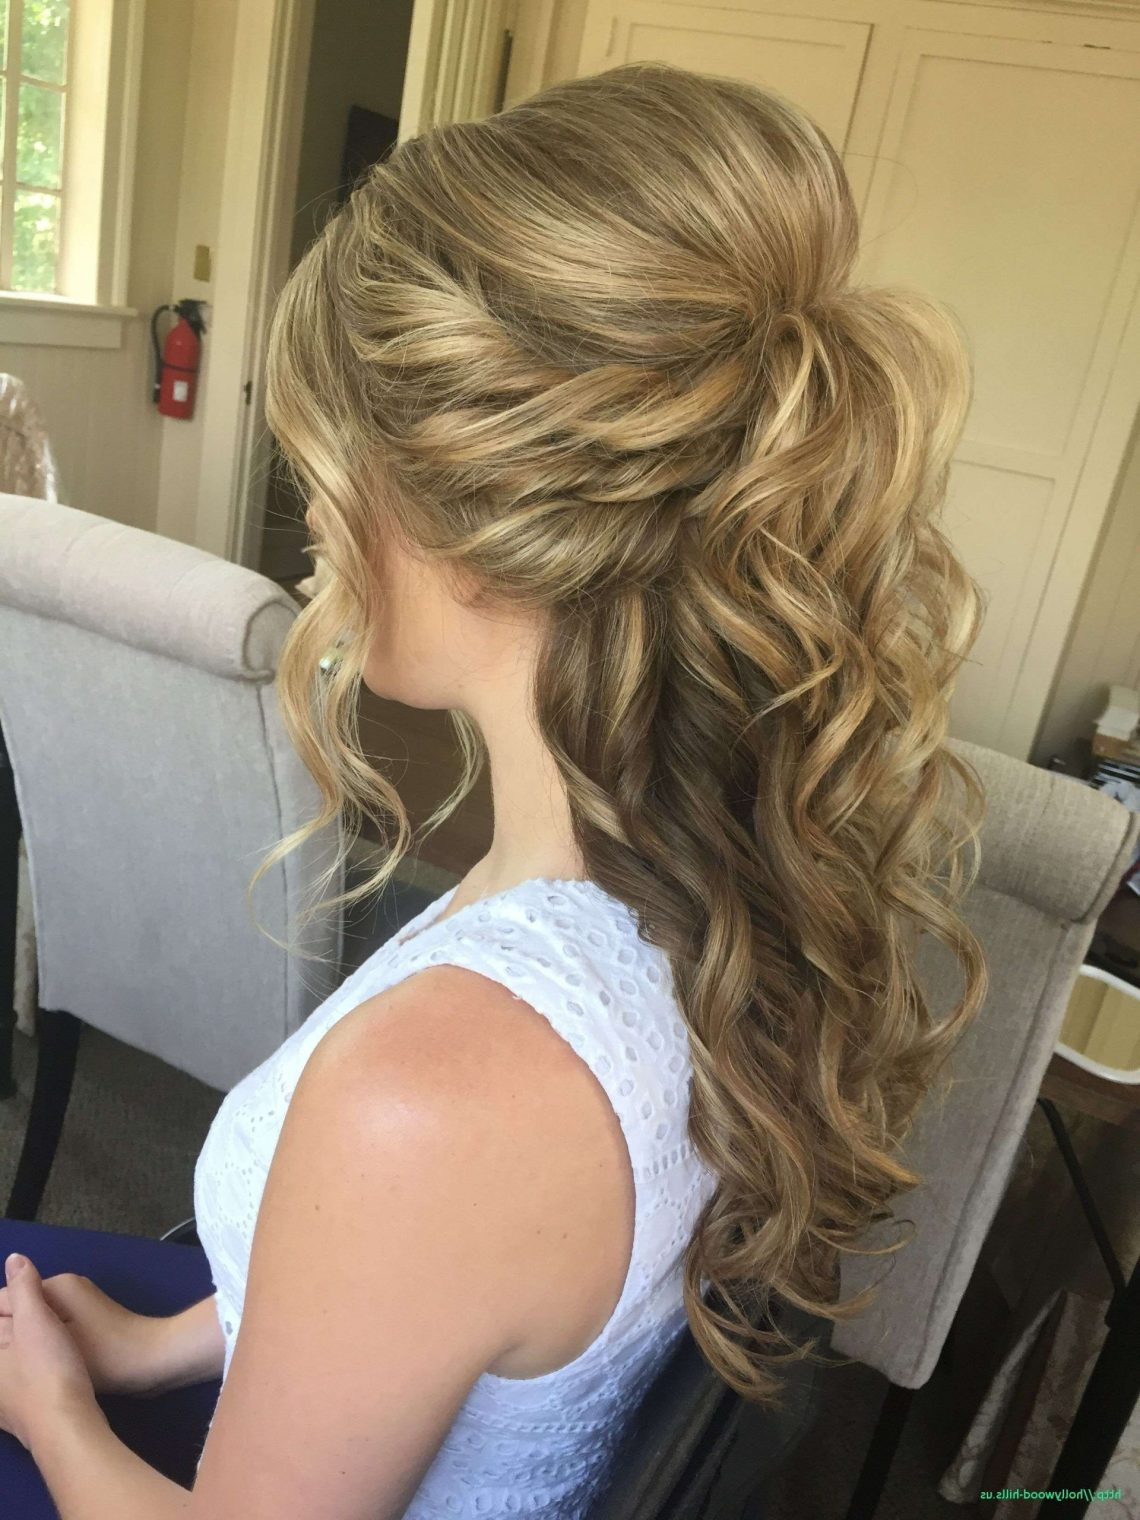 Image Result For Mother Of The Bride Hairstyles For Medium 40+ Adorable Hairstyles For Mother Of The Bride Medium Hair